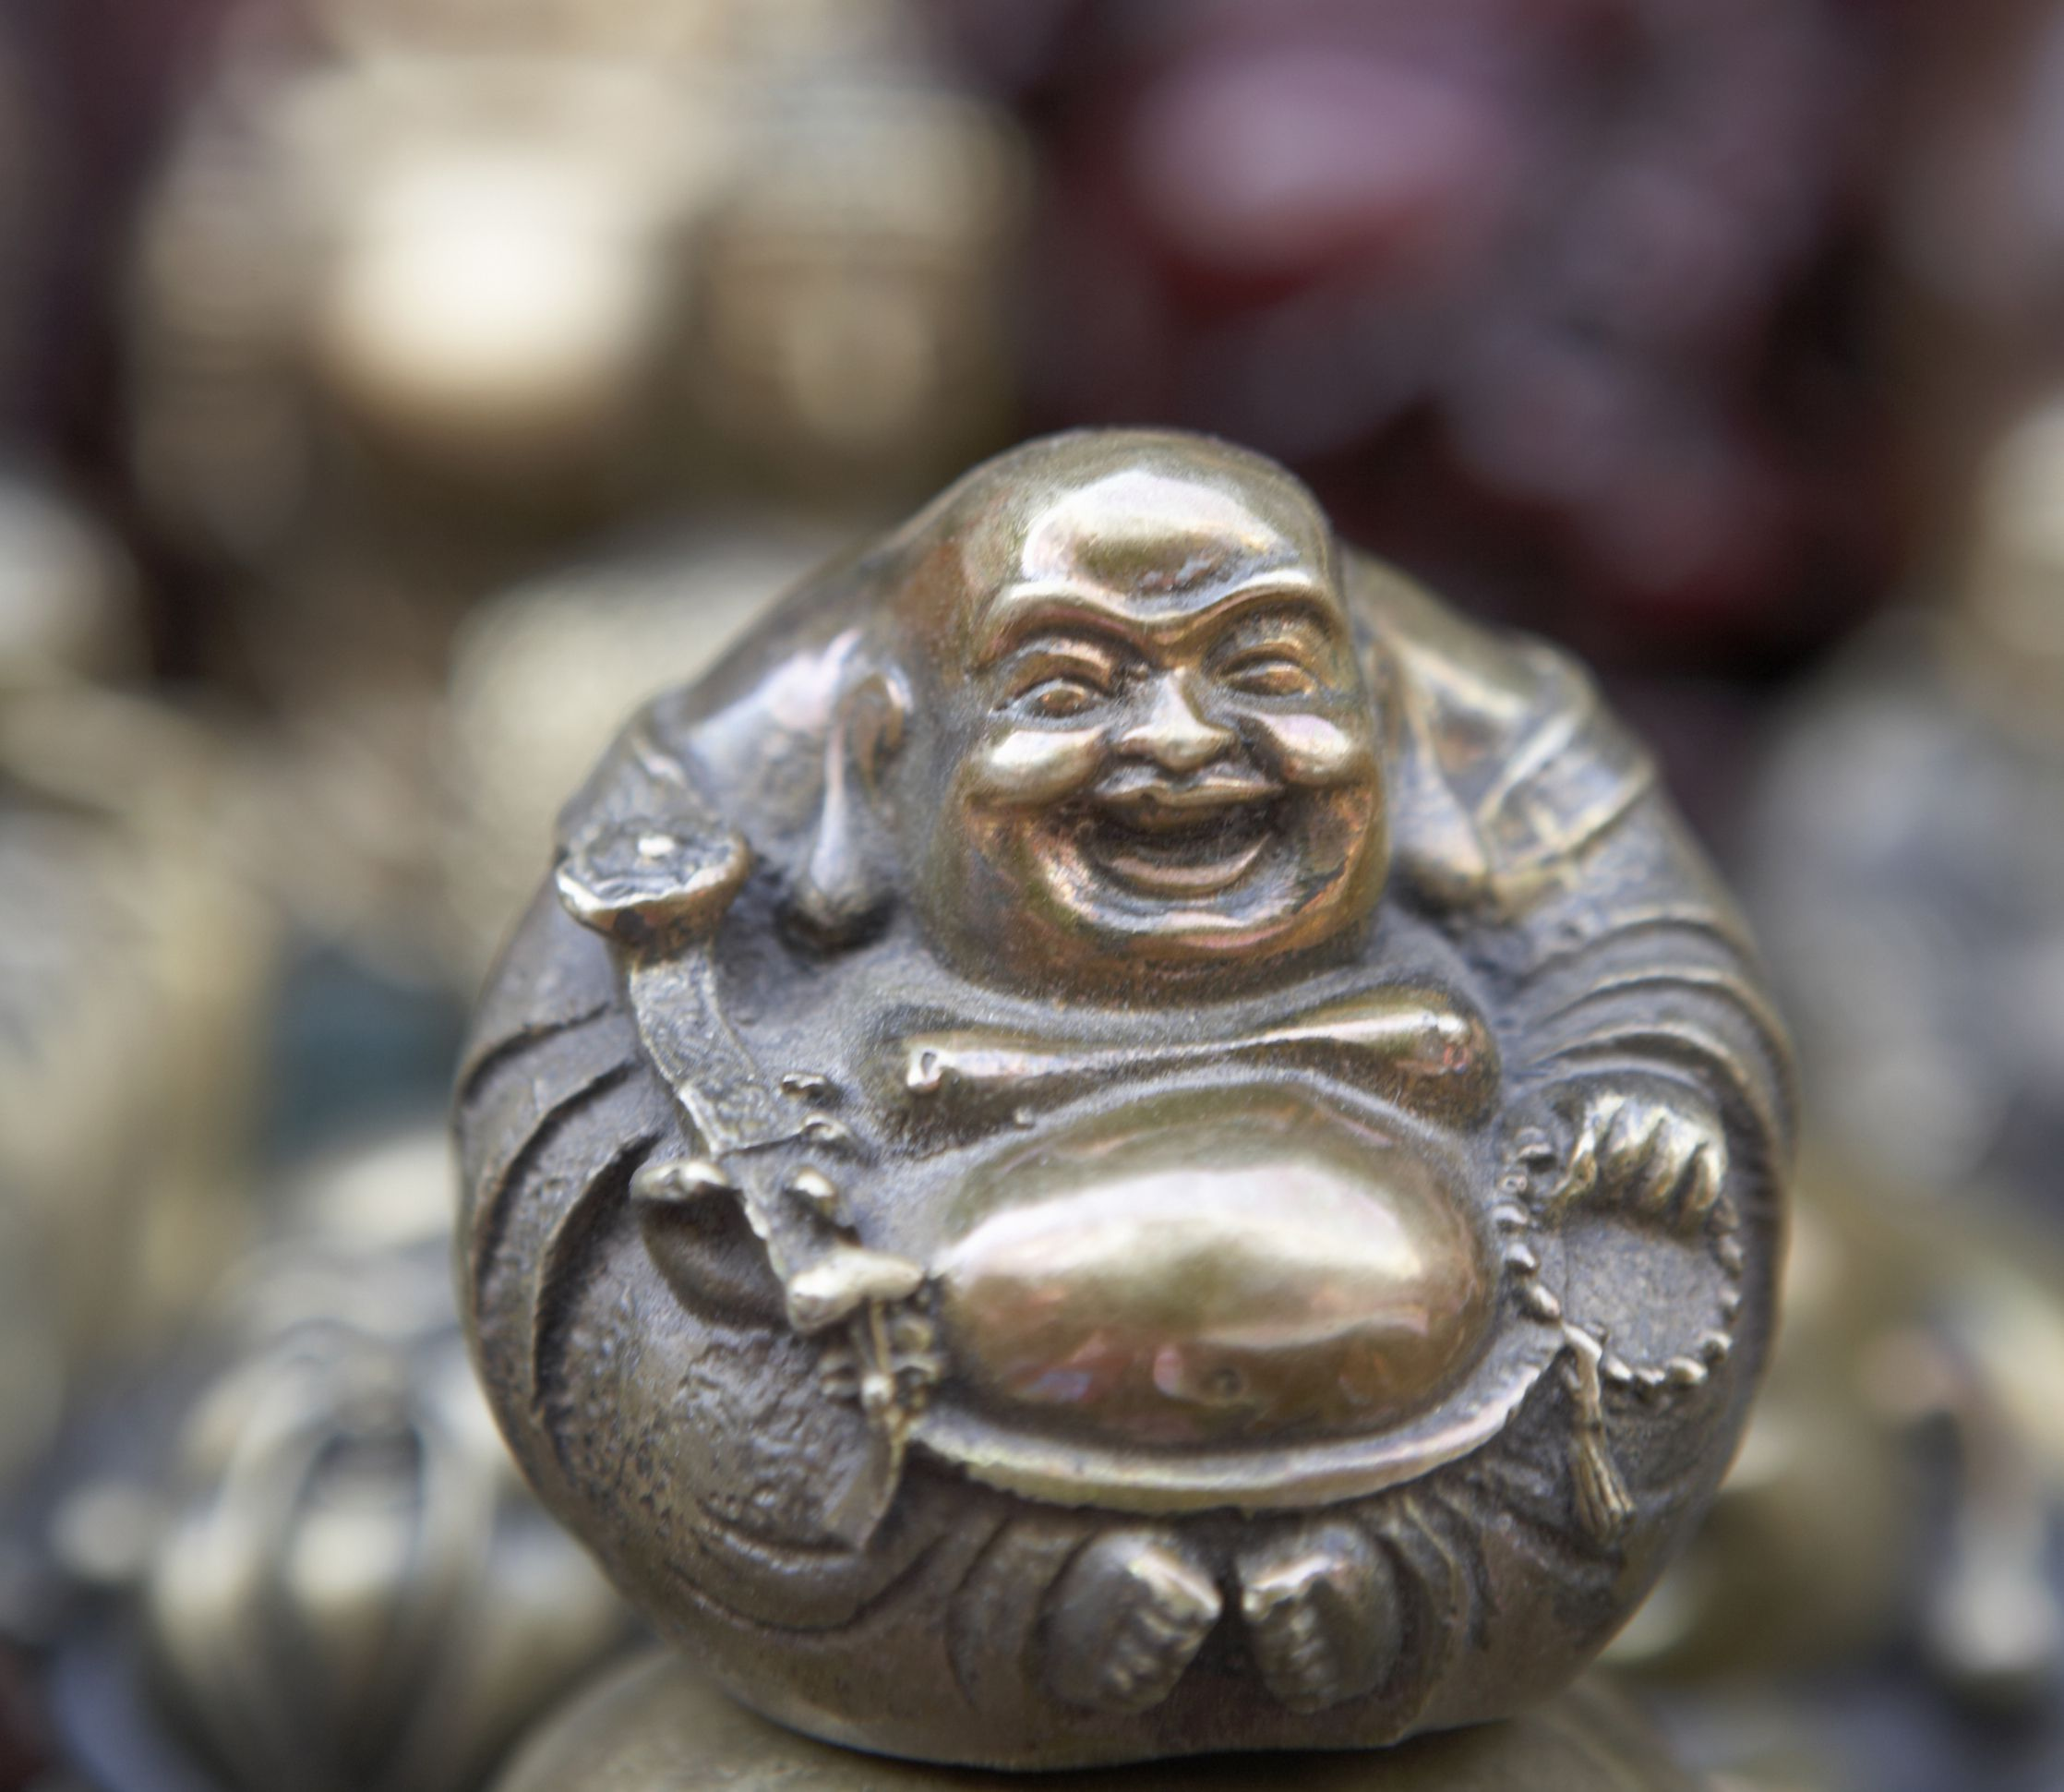 The Laughing Buddha Use As A Feng Shui Cure